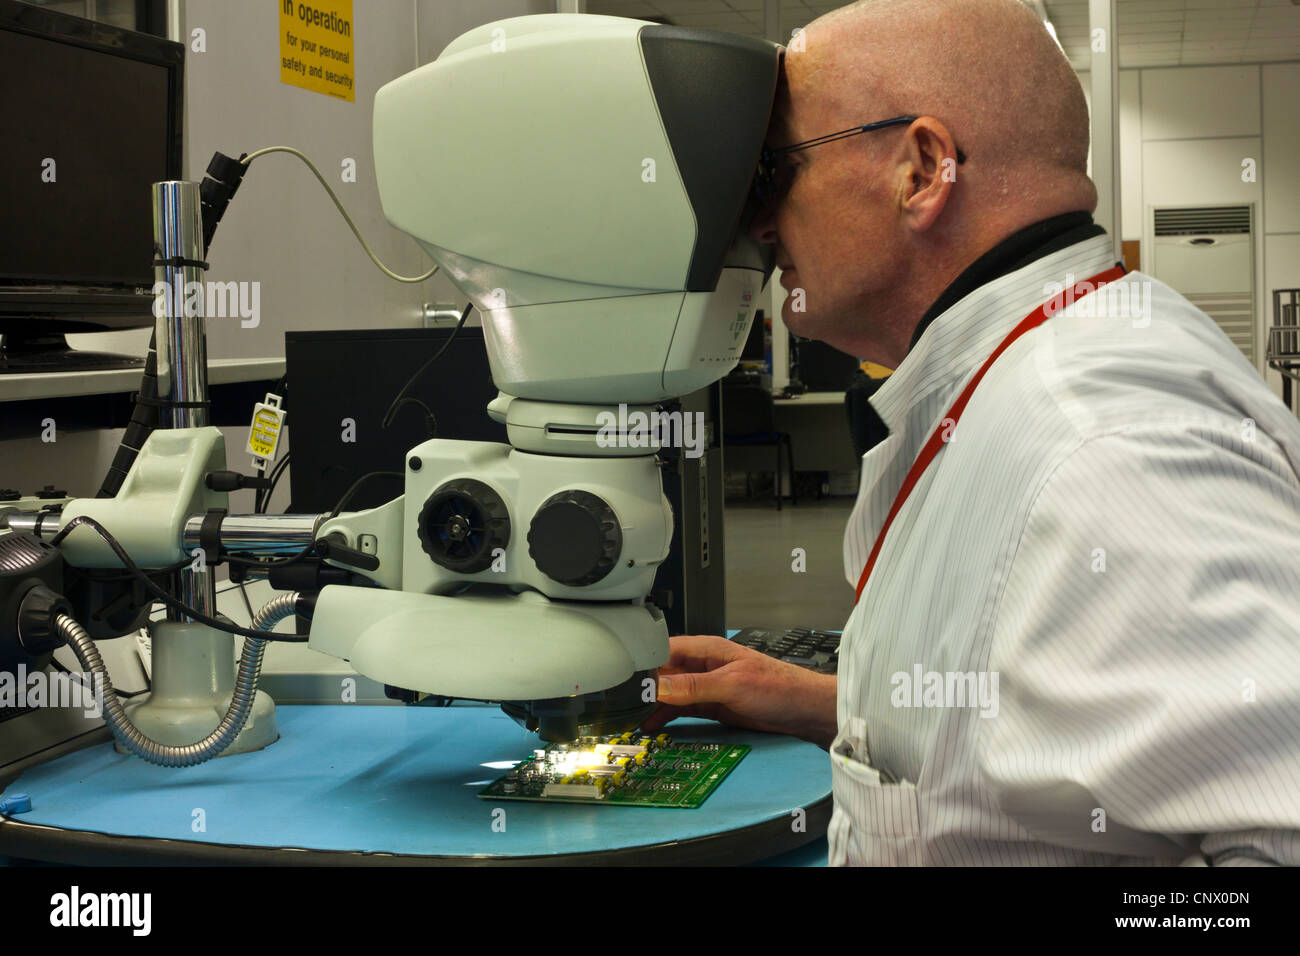 Engineer carrying out quality inspection of PCB assembled in SMT ...